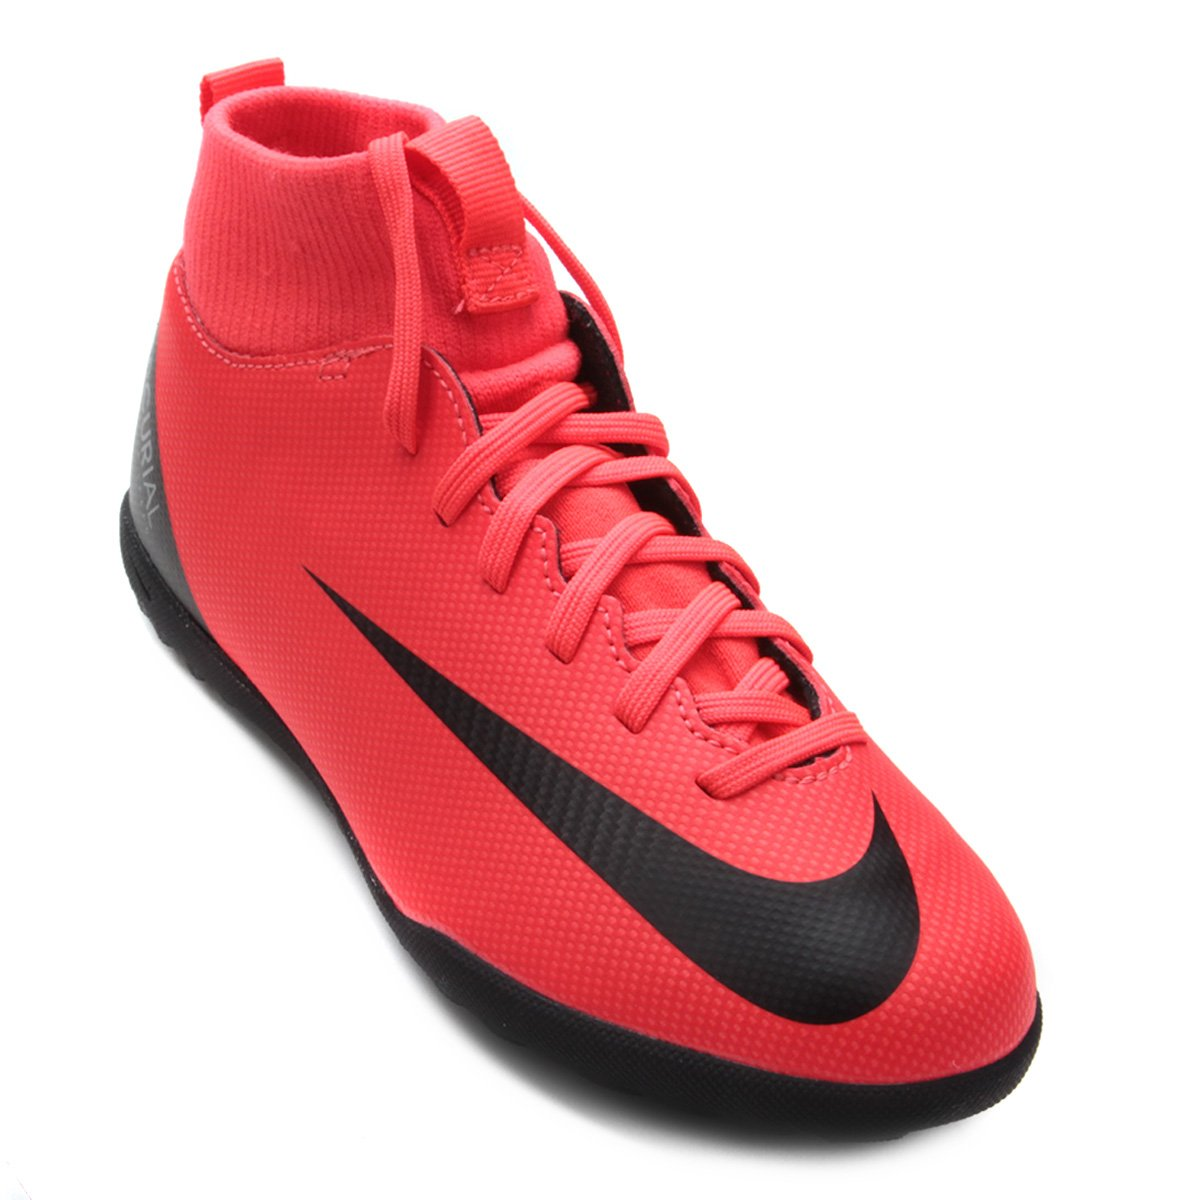 e5d8ea4be6 Chuteira Society Infantil Nike Mercurial Superfly 6 Club CR7 TF ...